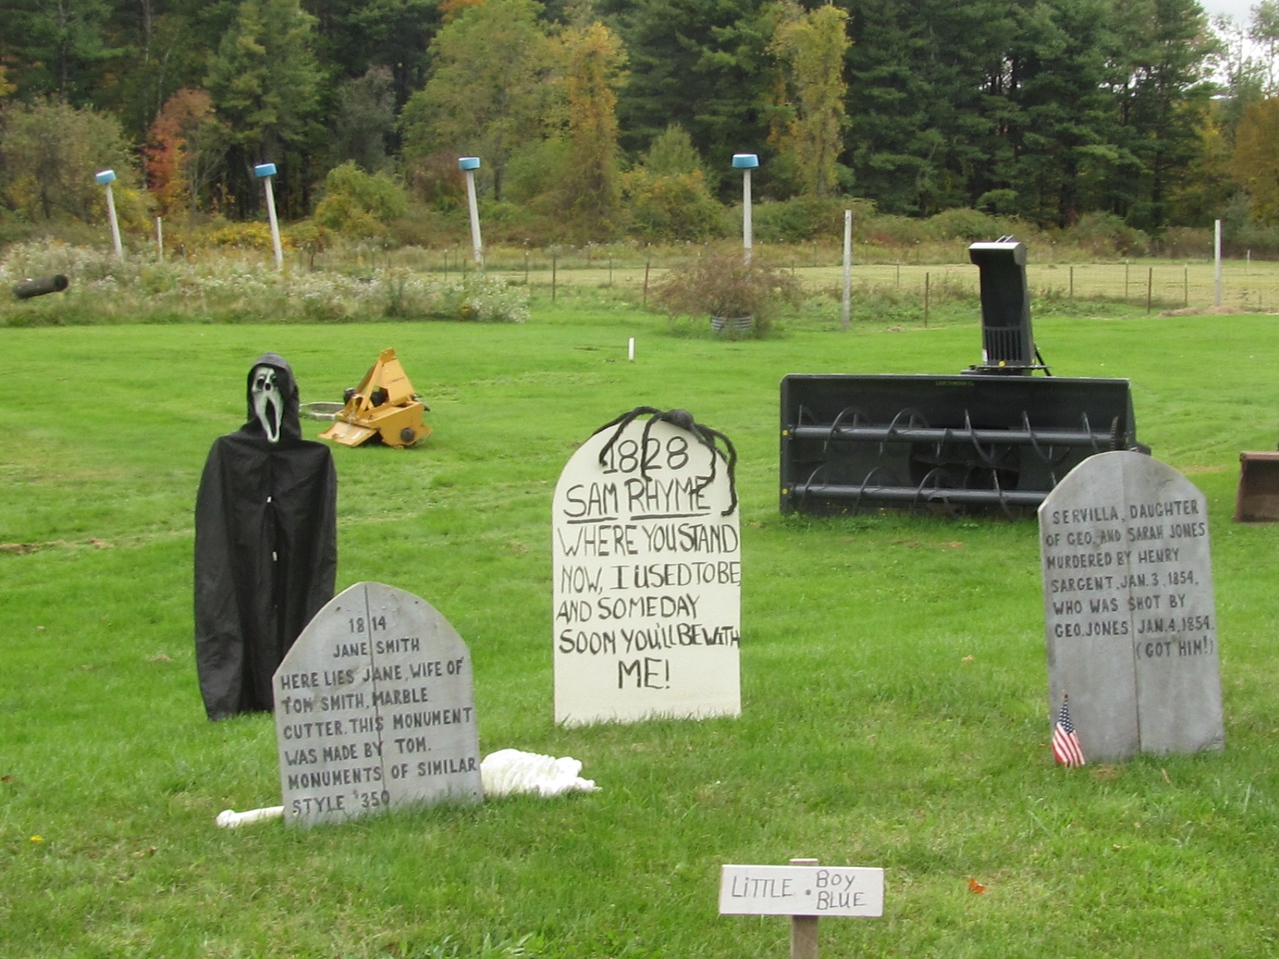 Check those tombstones